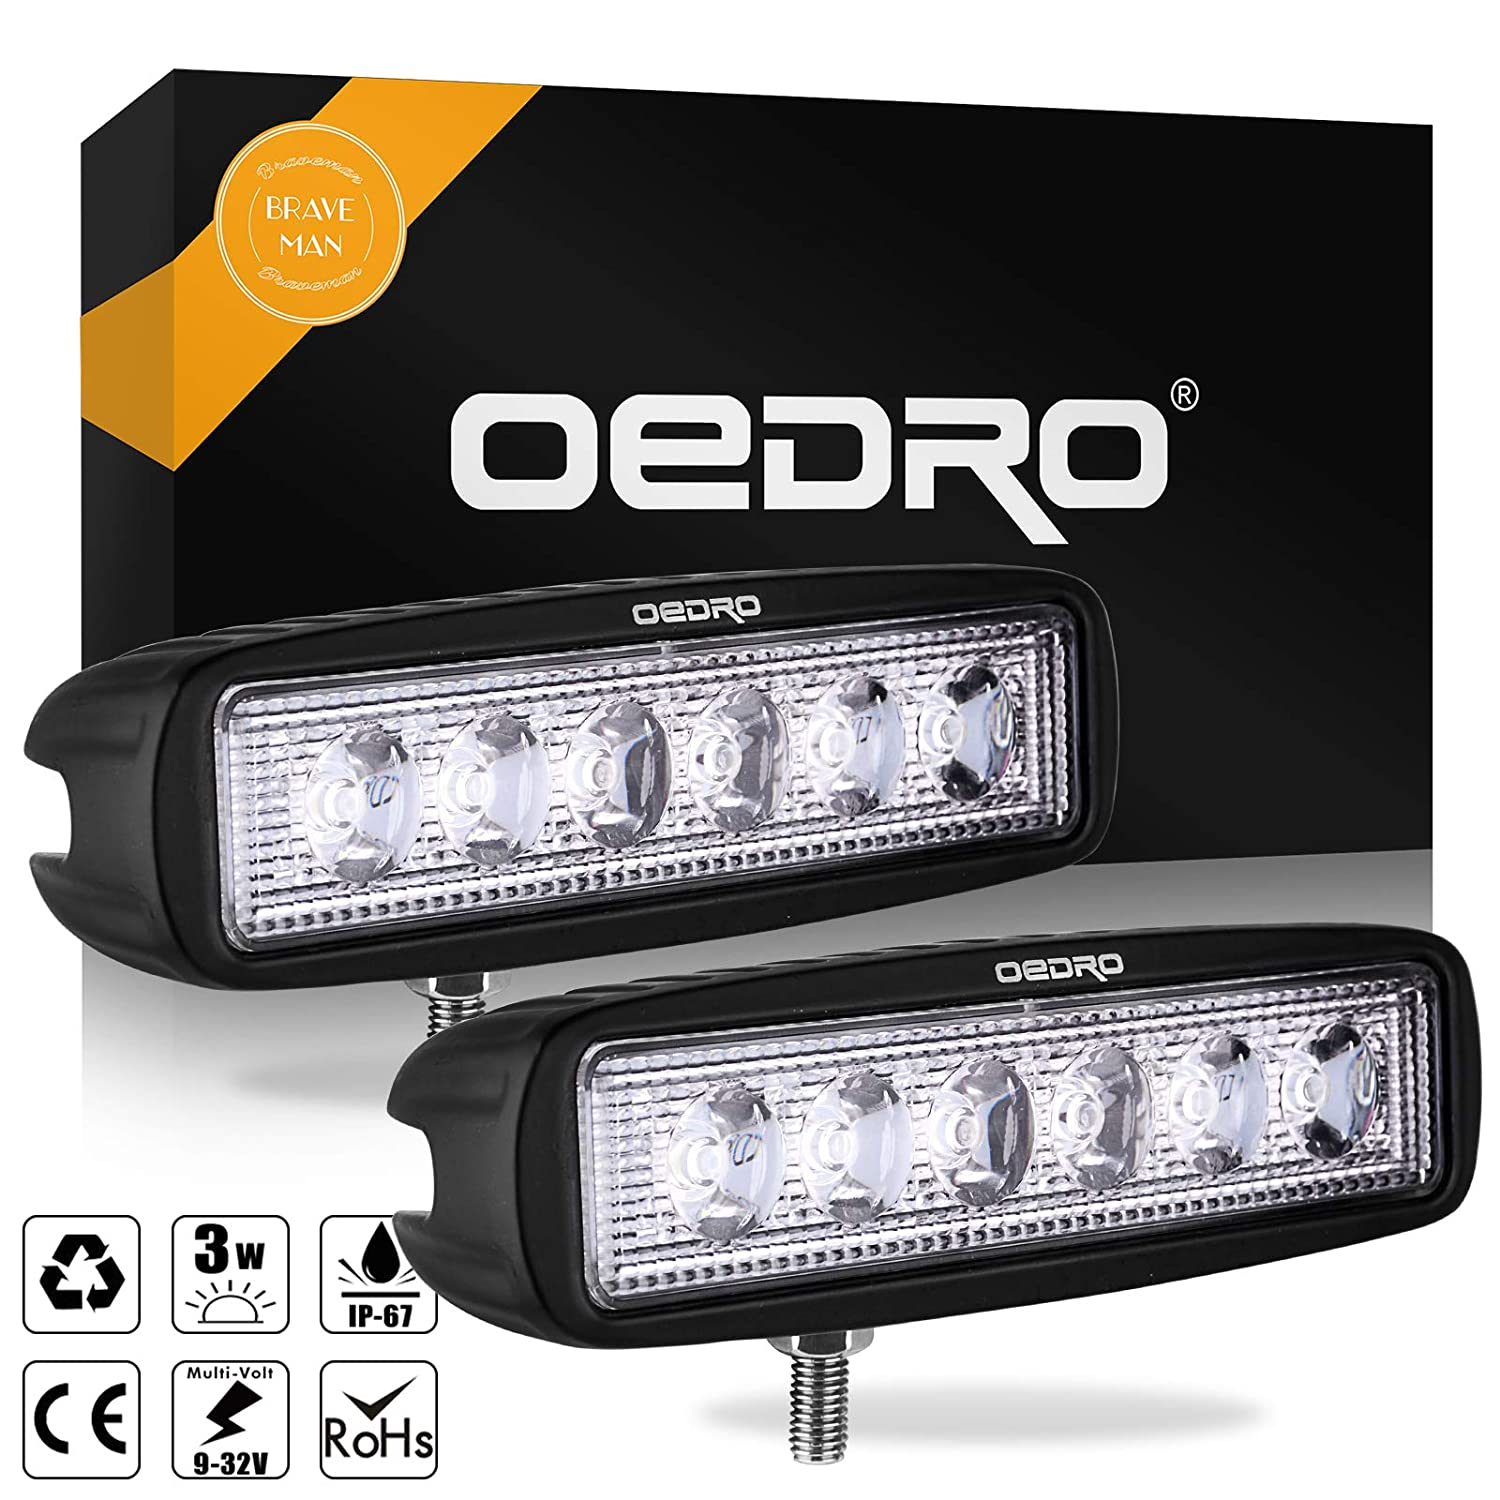 oEdRo 6Inch LED Light Bar 2pcs 18W Spot Fog Driving Lights Off Road Light Car Boat Lights LED Work Light Lamp Compatible for SUV 4X4 4WD ATV Jeep Truck 3 years Warranty 4333221464